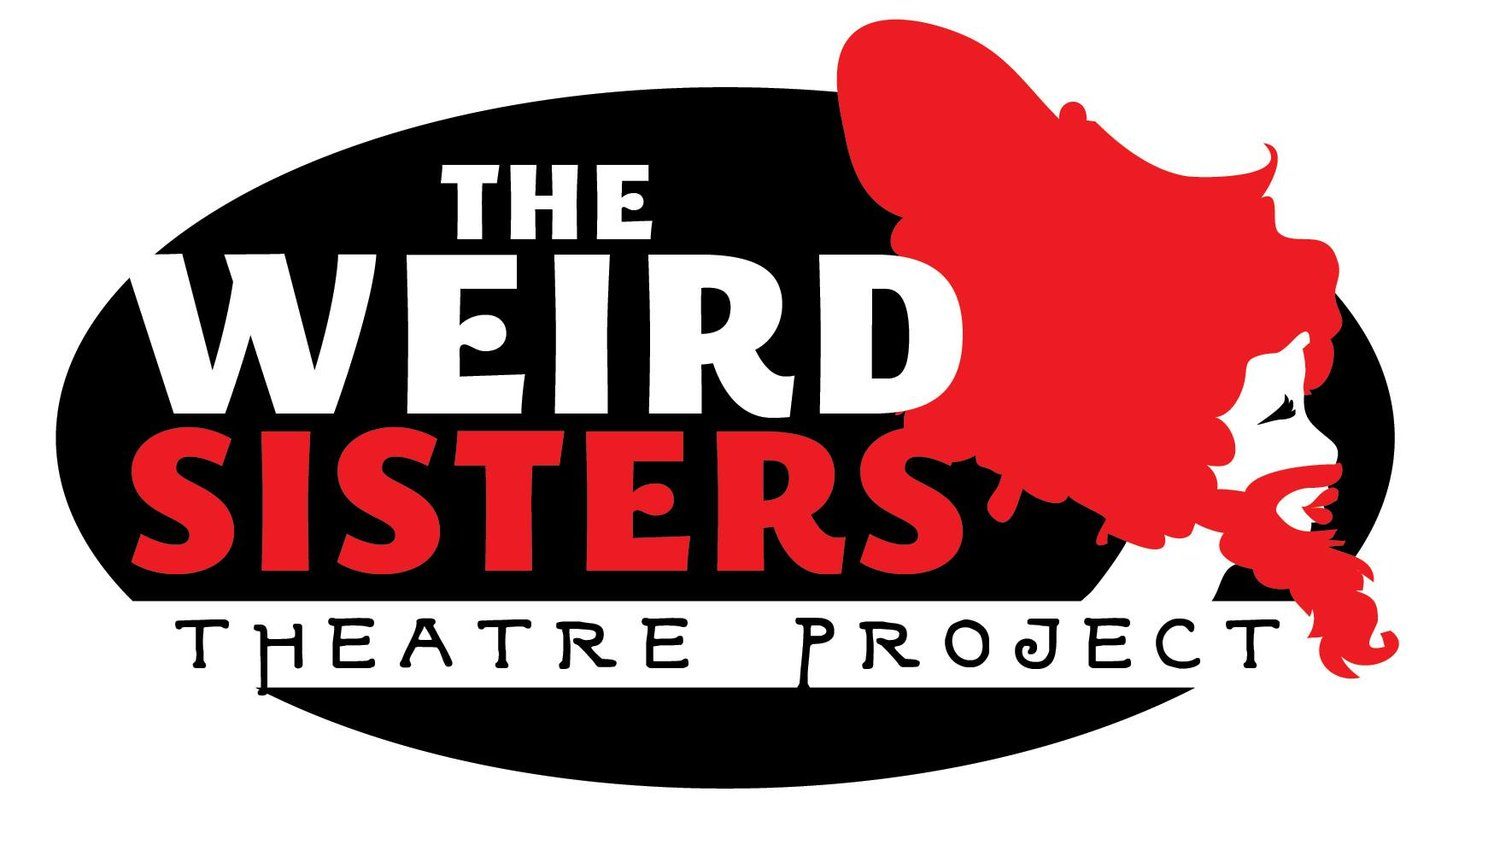 The Weird Sisters Theatre Project